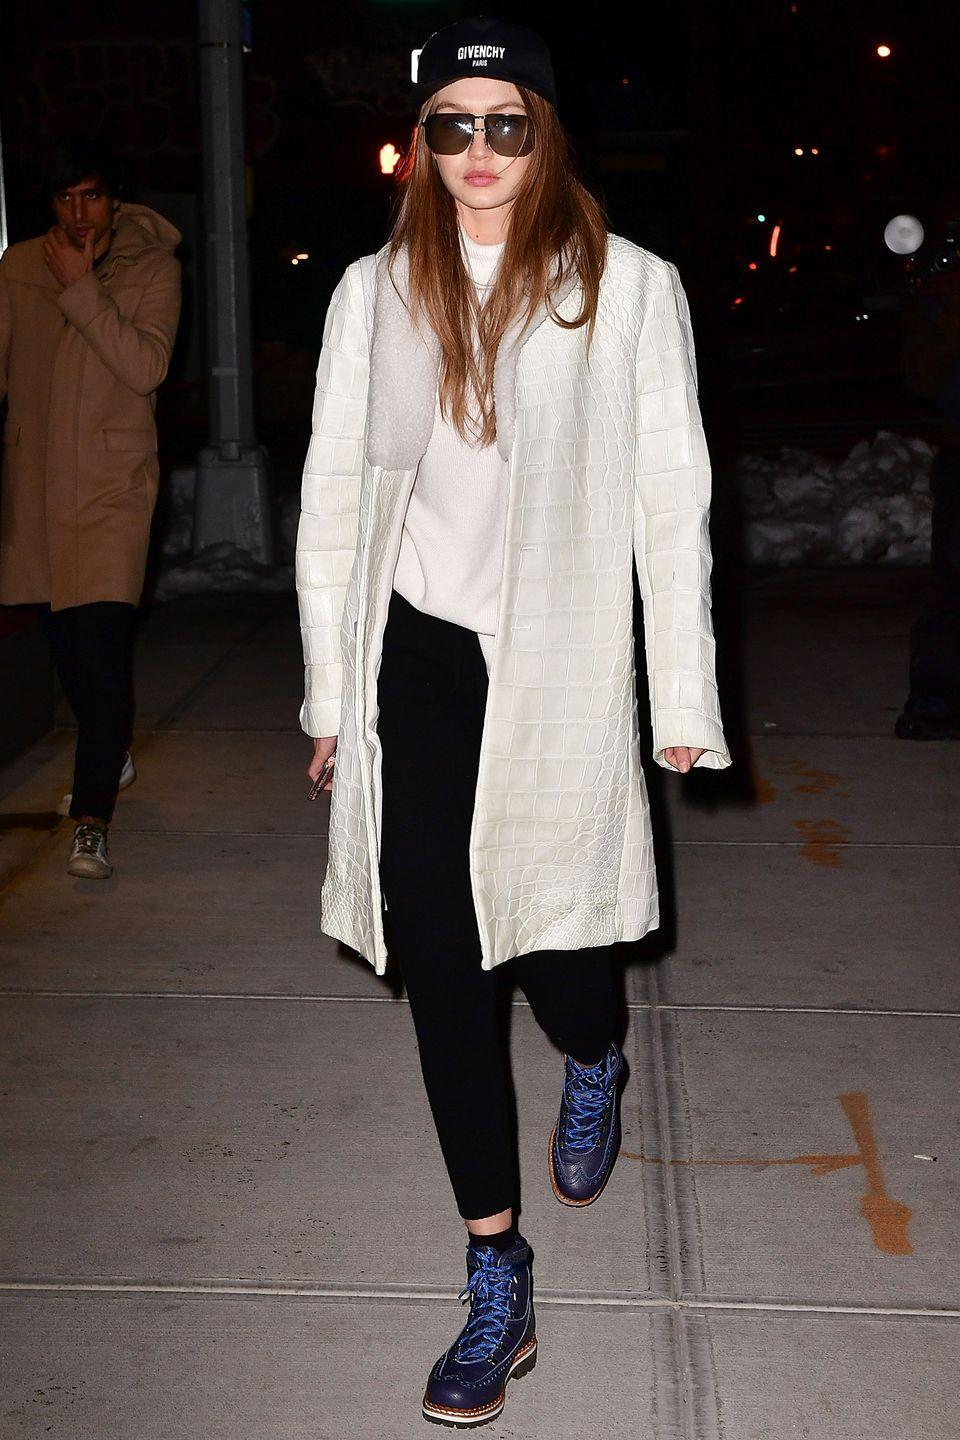 <p>In a Givenchy baseball cap, Stephanie Rad white oversized turtleneck, black leggings, white leather shearling, Tabitha Simmons lace-up boots and sunglasses while leaving The Smile in NYC.</p>